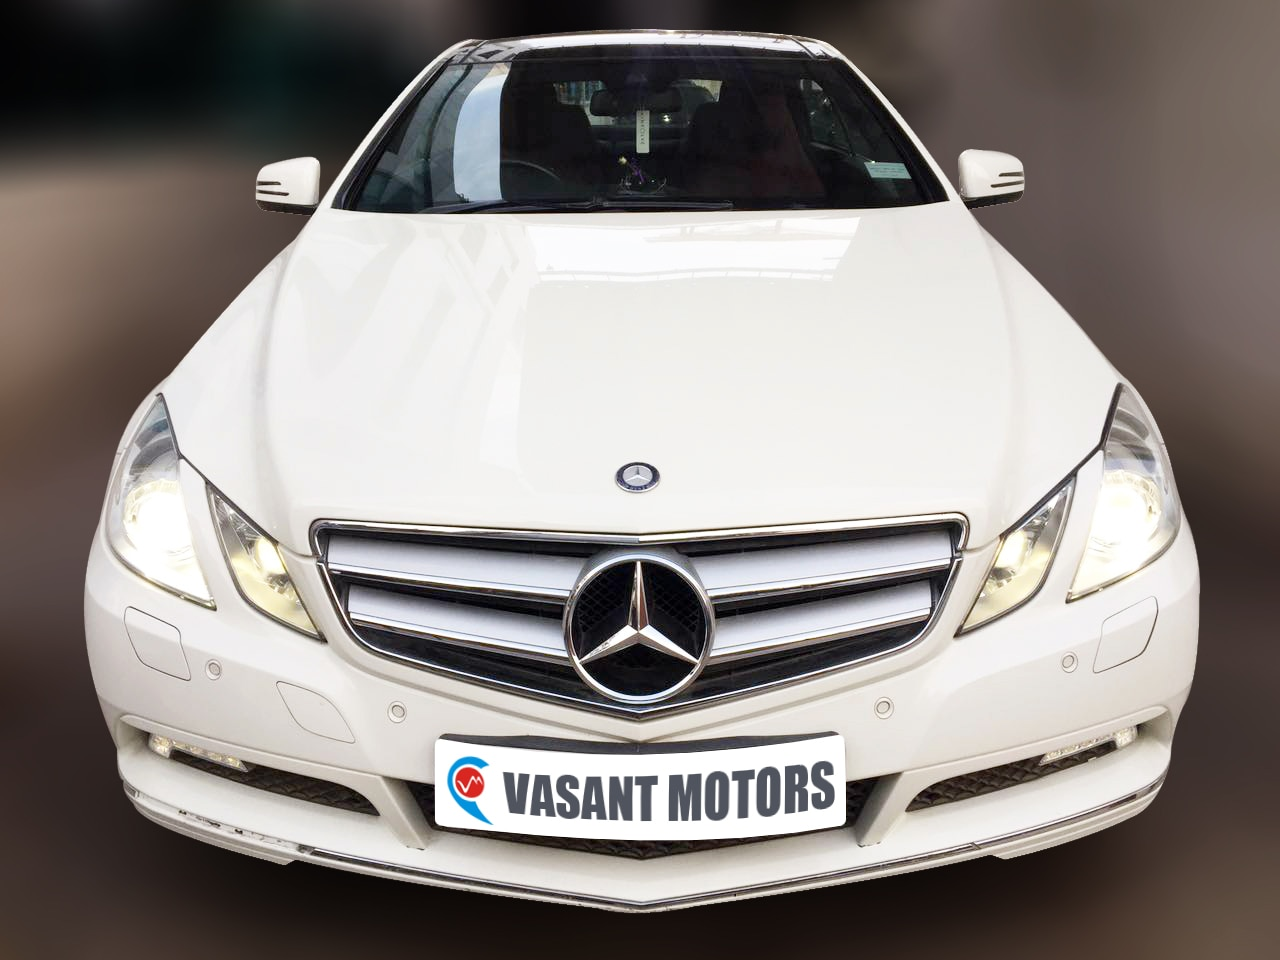 MERCEDES BENZ E350 COUPE  (CALCITE WHITE COLOR, PETROL), 2010 model done only 7, 000km in absolute mint condition. For further info call 7569696666